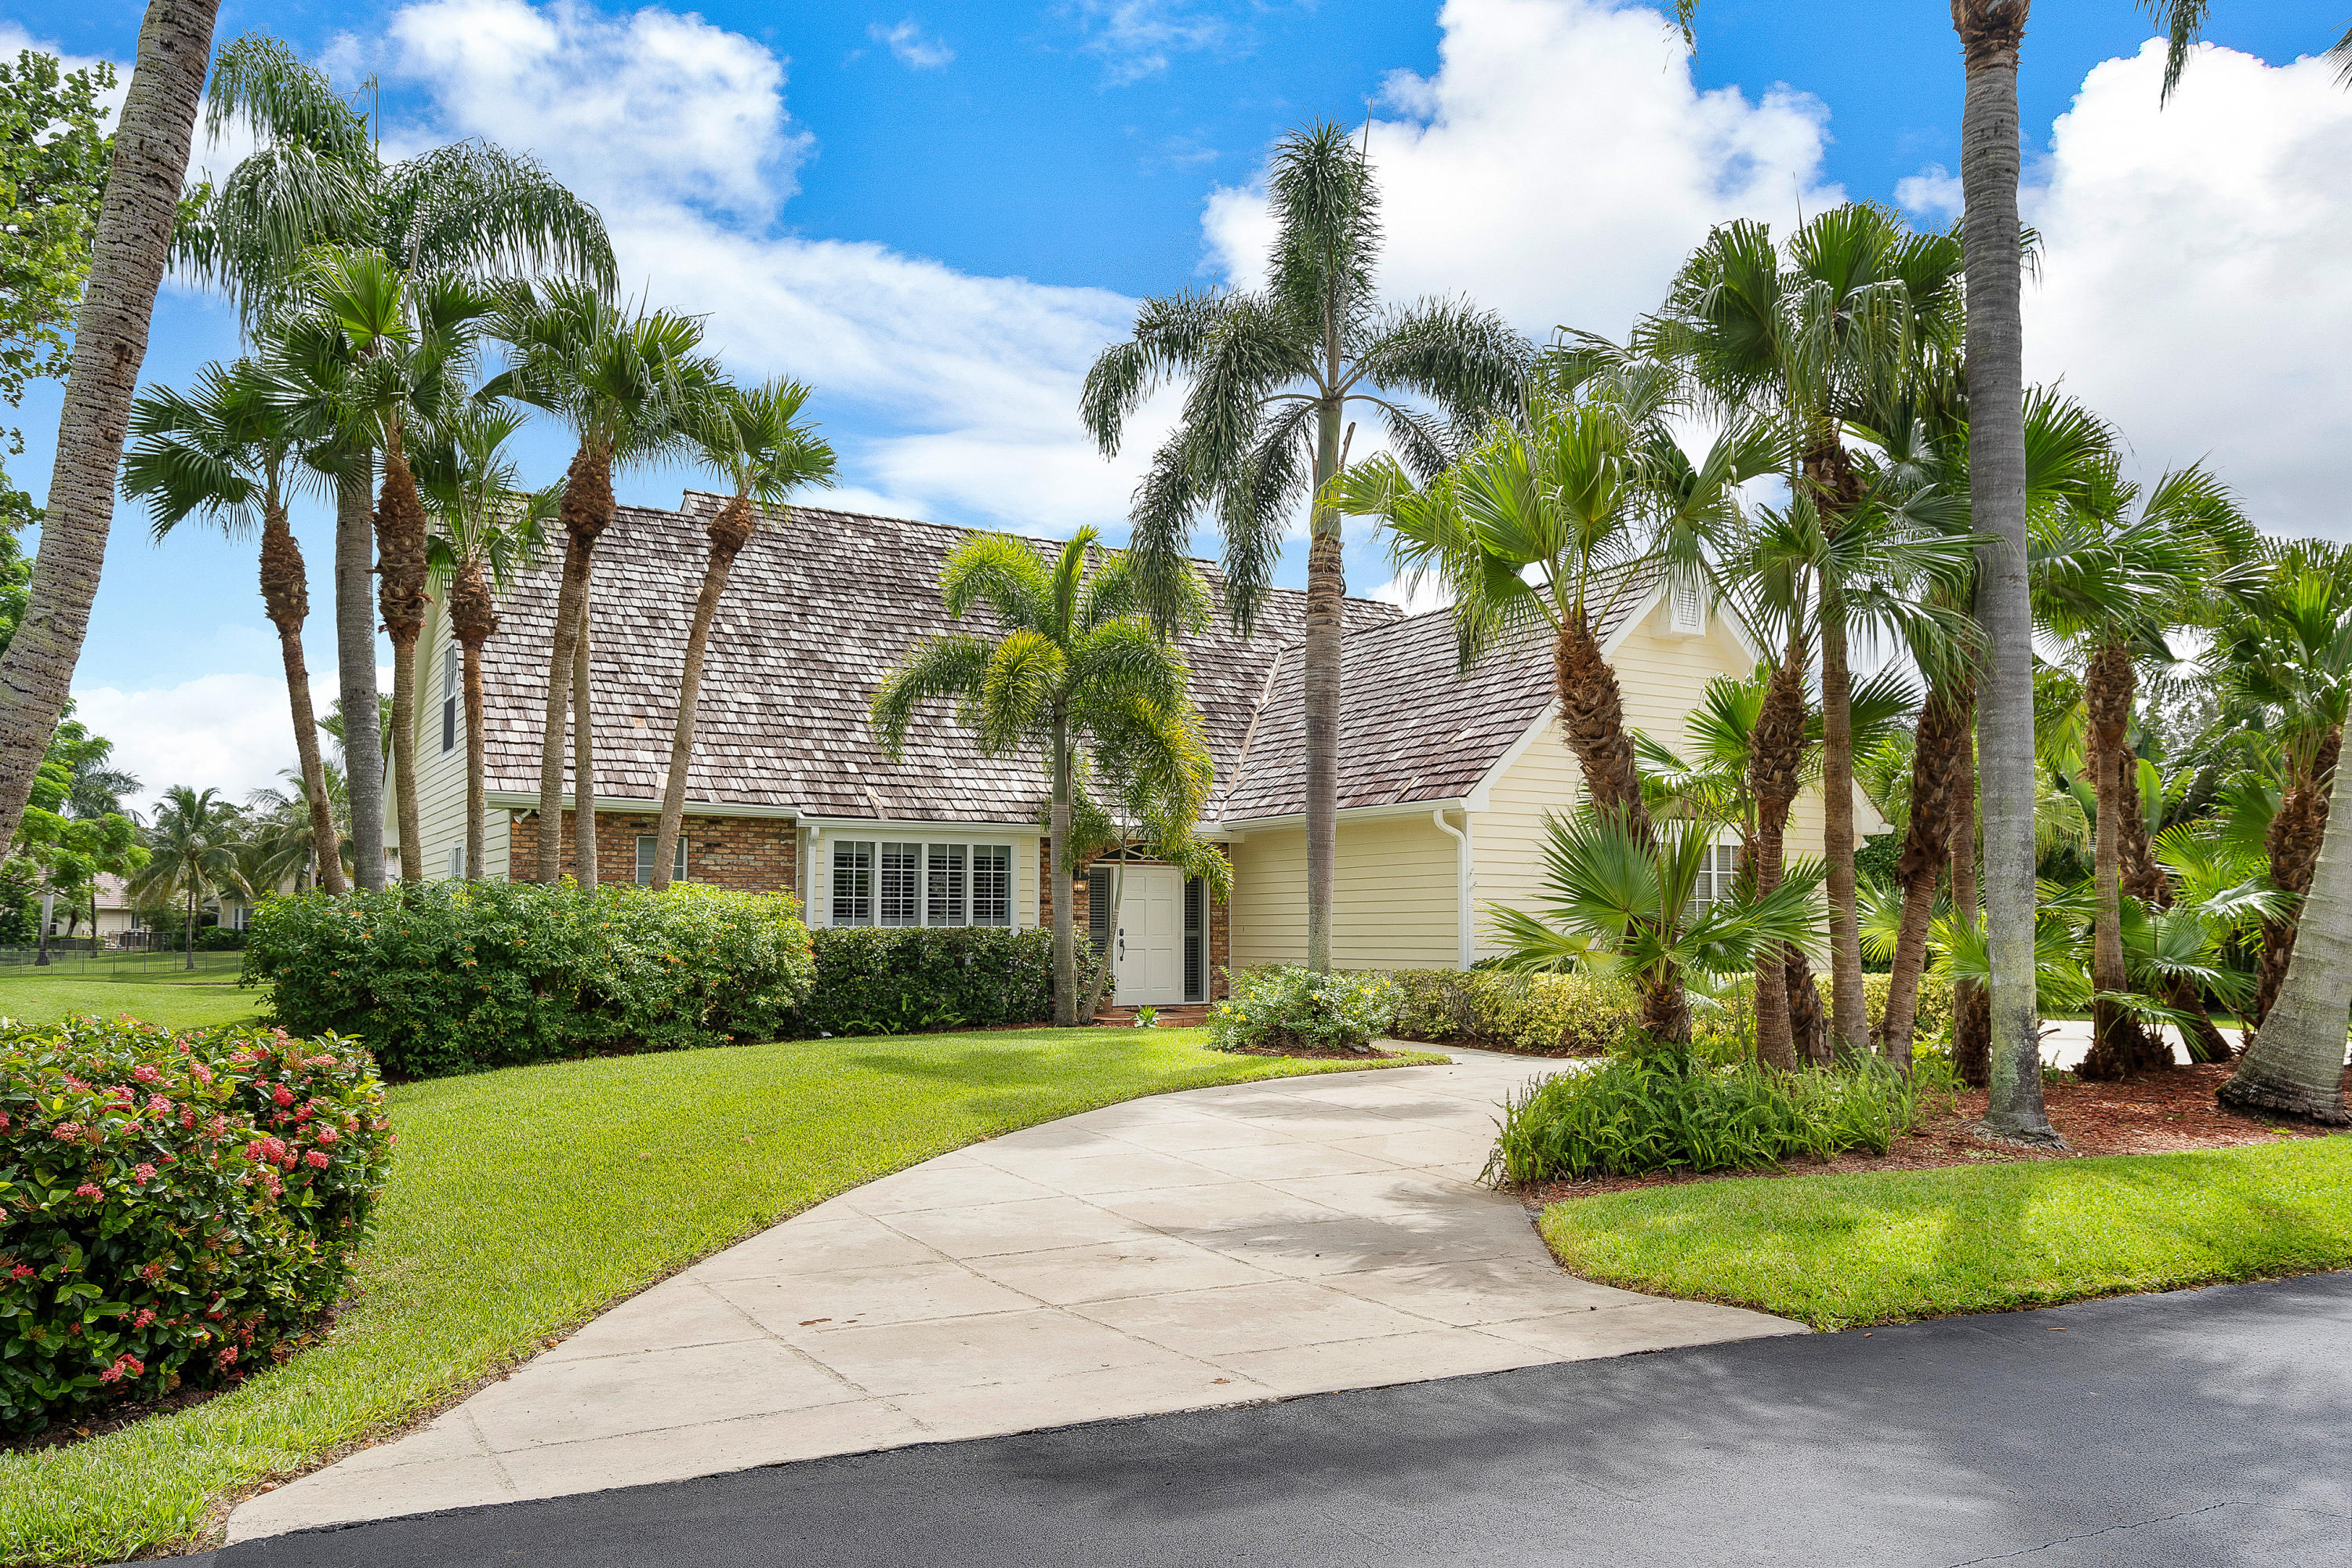 New Home for sale at 18360 Lakeside Drive in Tequesta